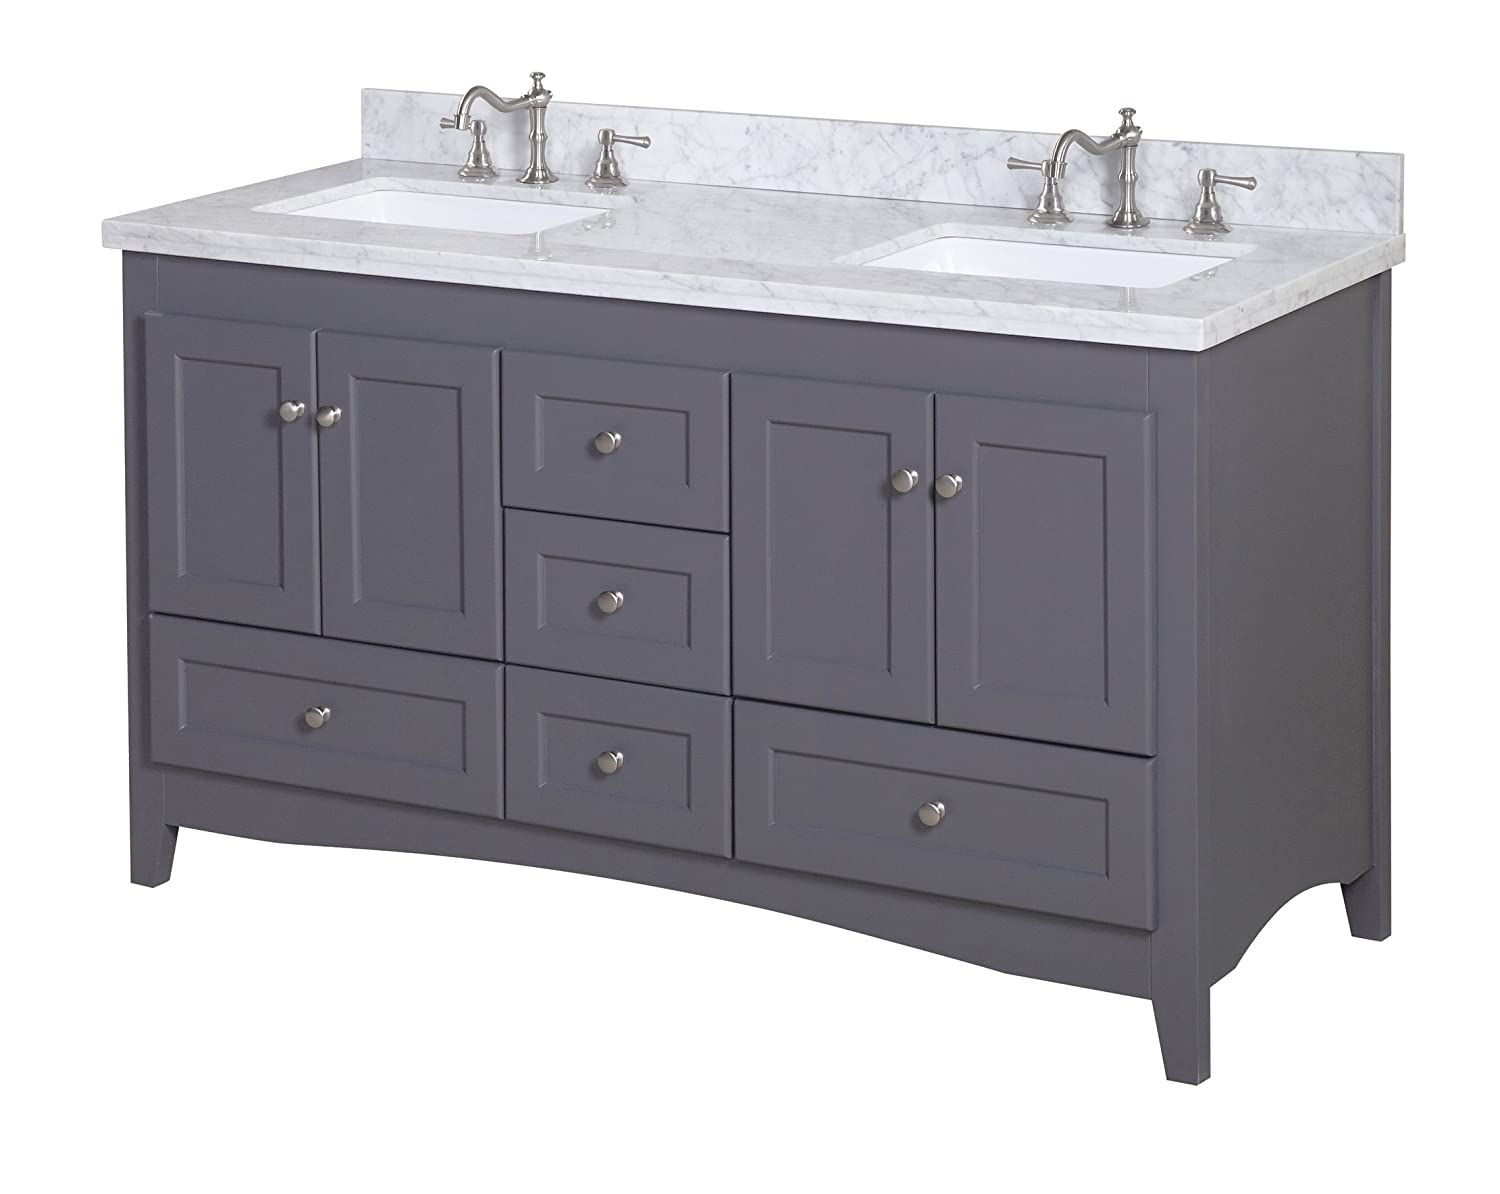 Abbey kitchens and bathrooms - Kitchen Bath Collection Kbc38602gycarr D Abbey Double Sink Bathroom Vanity With Marble Countertop Cabinet With Soft Close Function And Undermount Ceramic